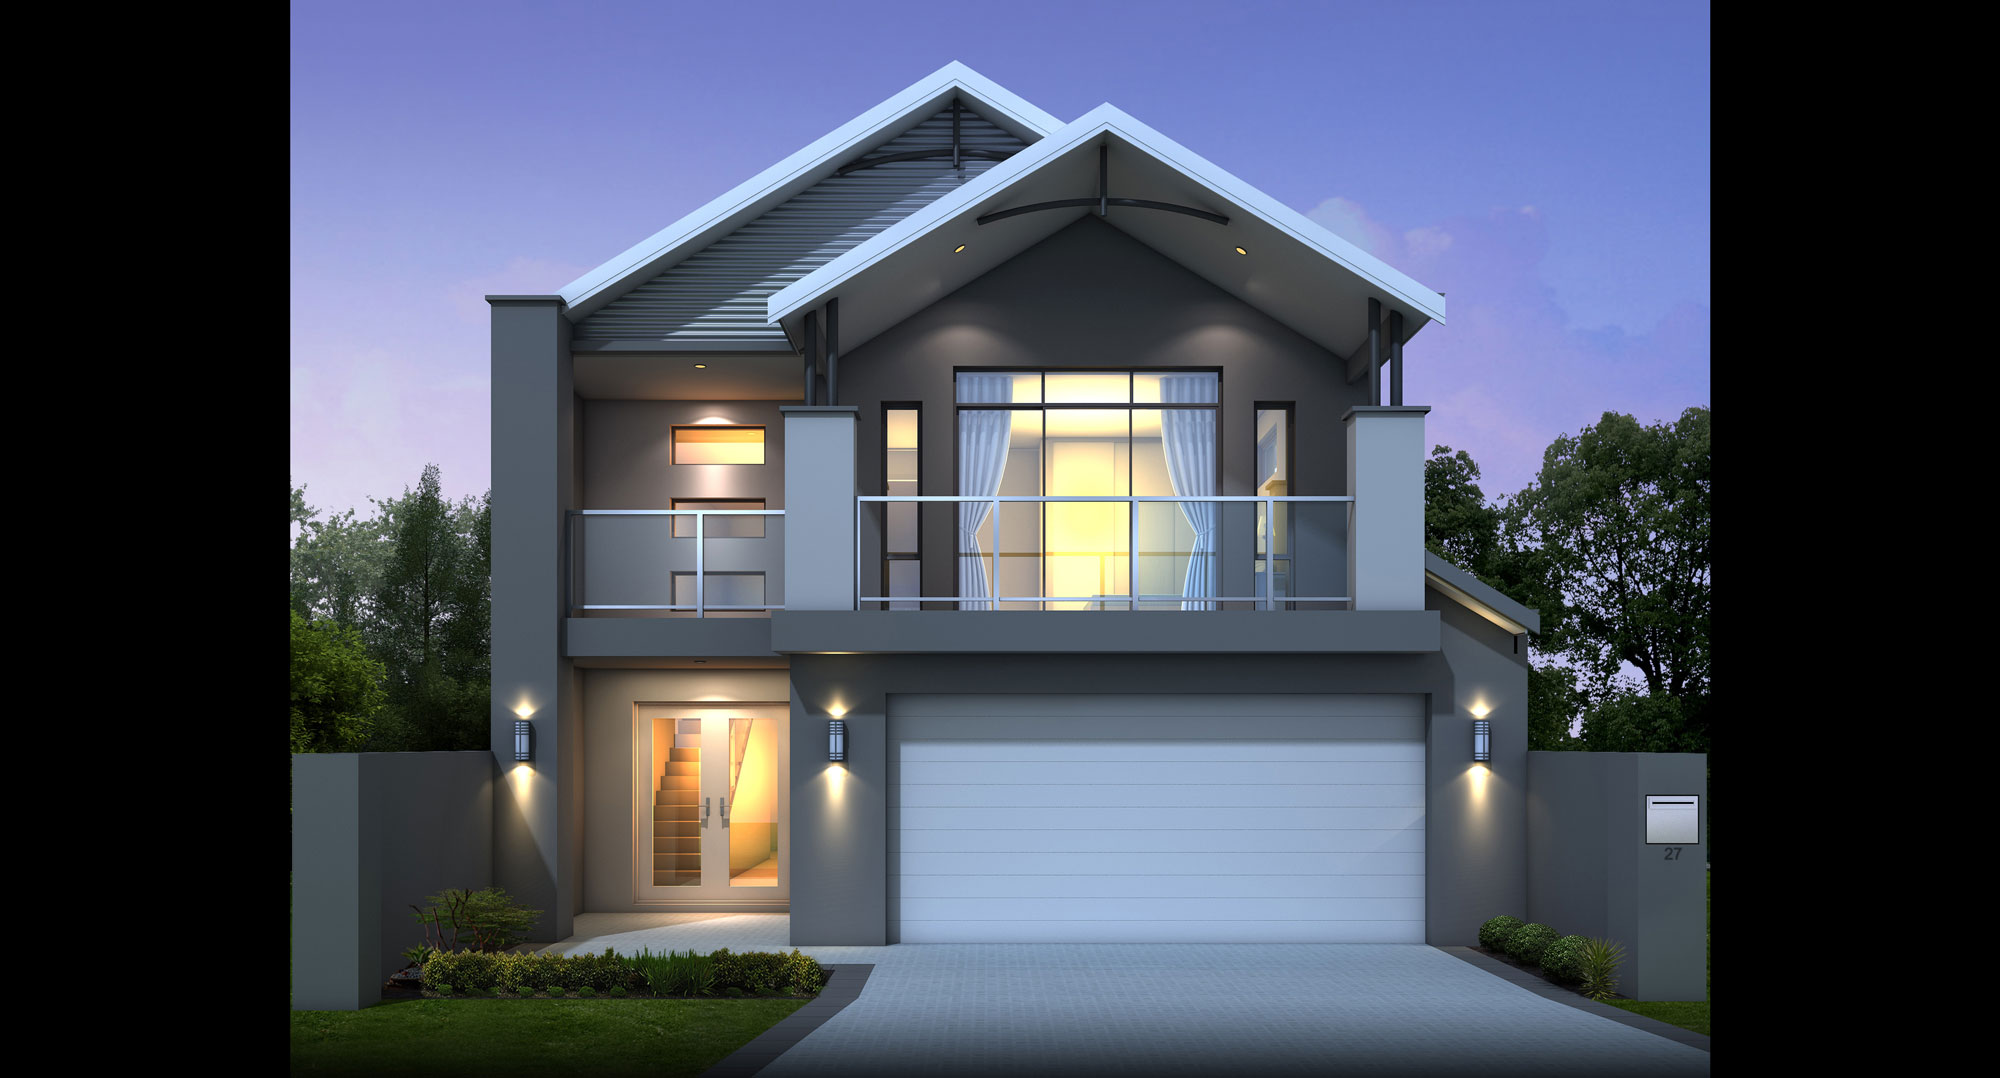 Narrow lot homes perth display houses designs great for Narrow lot home builders perth